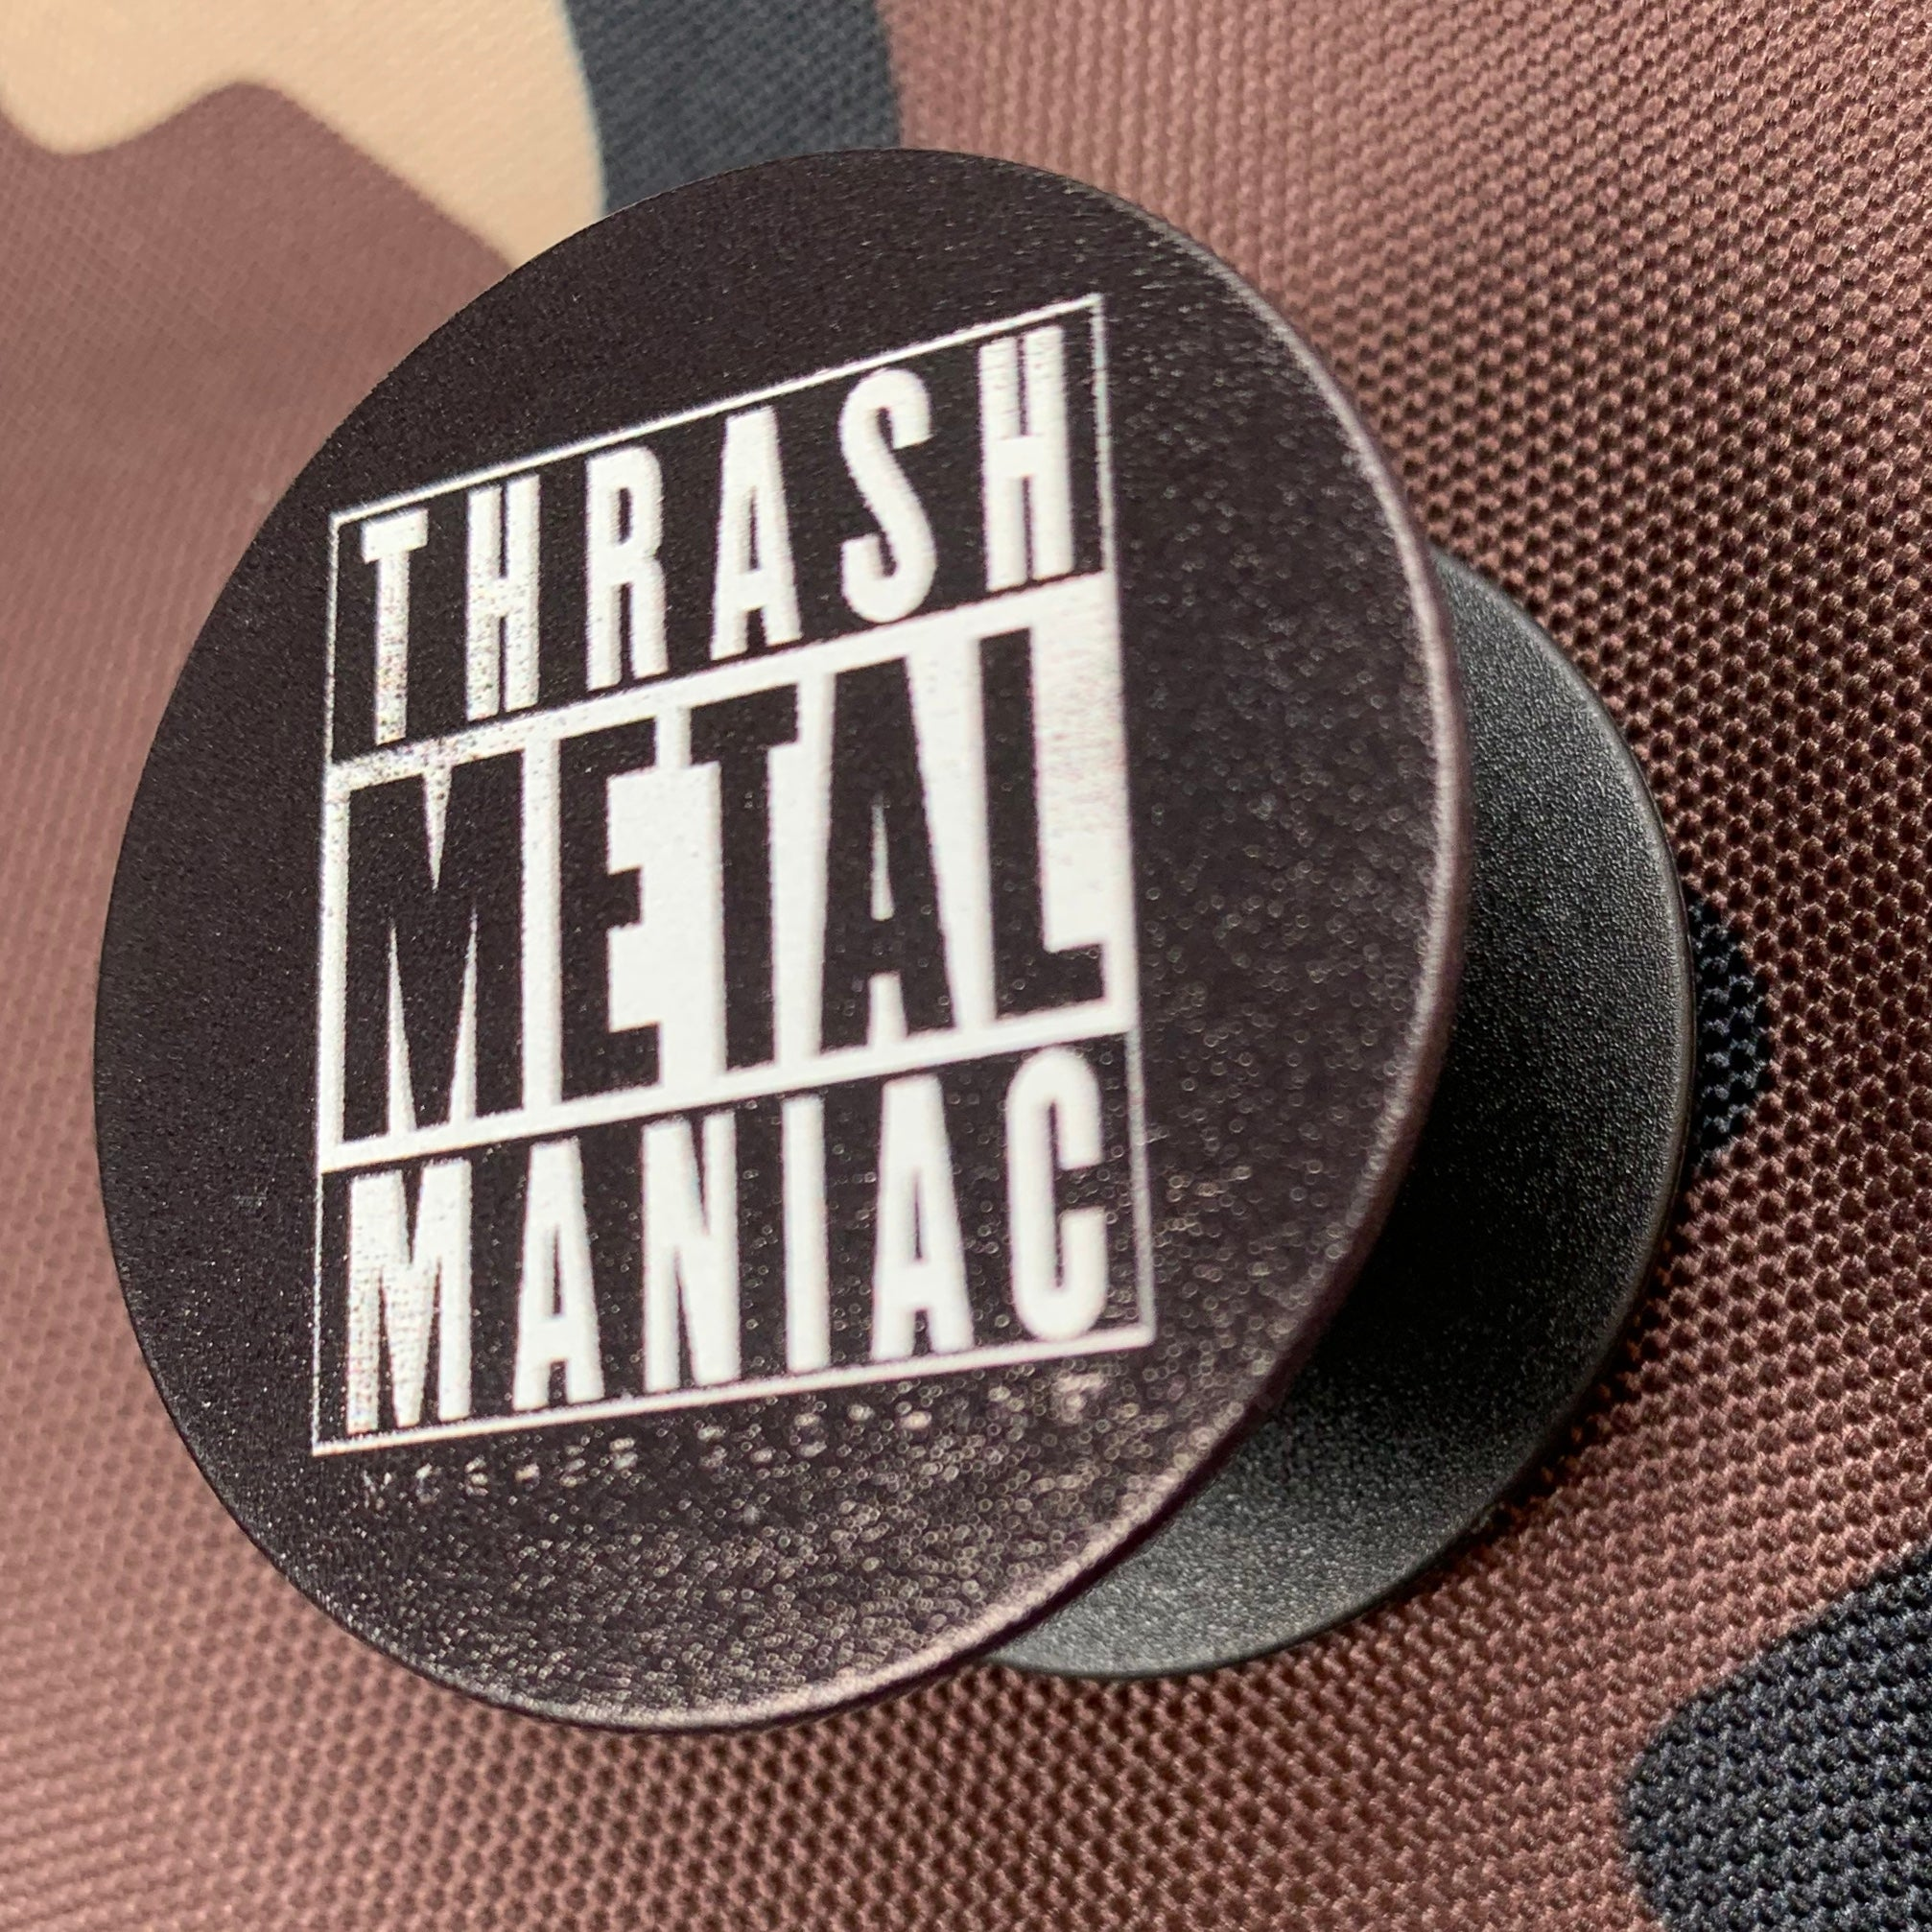 Pop Socket - Thrash Metal Maniac by Mosher Clothing